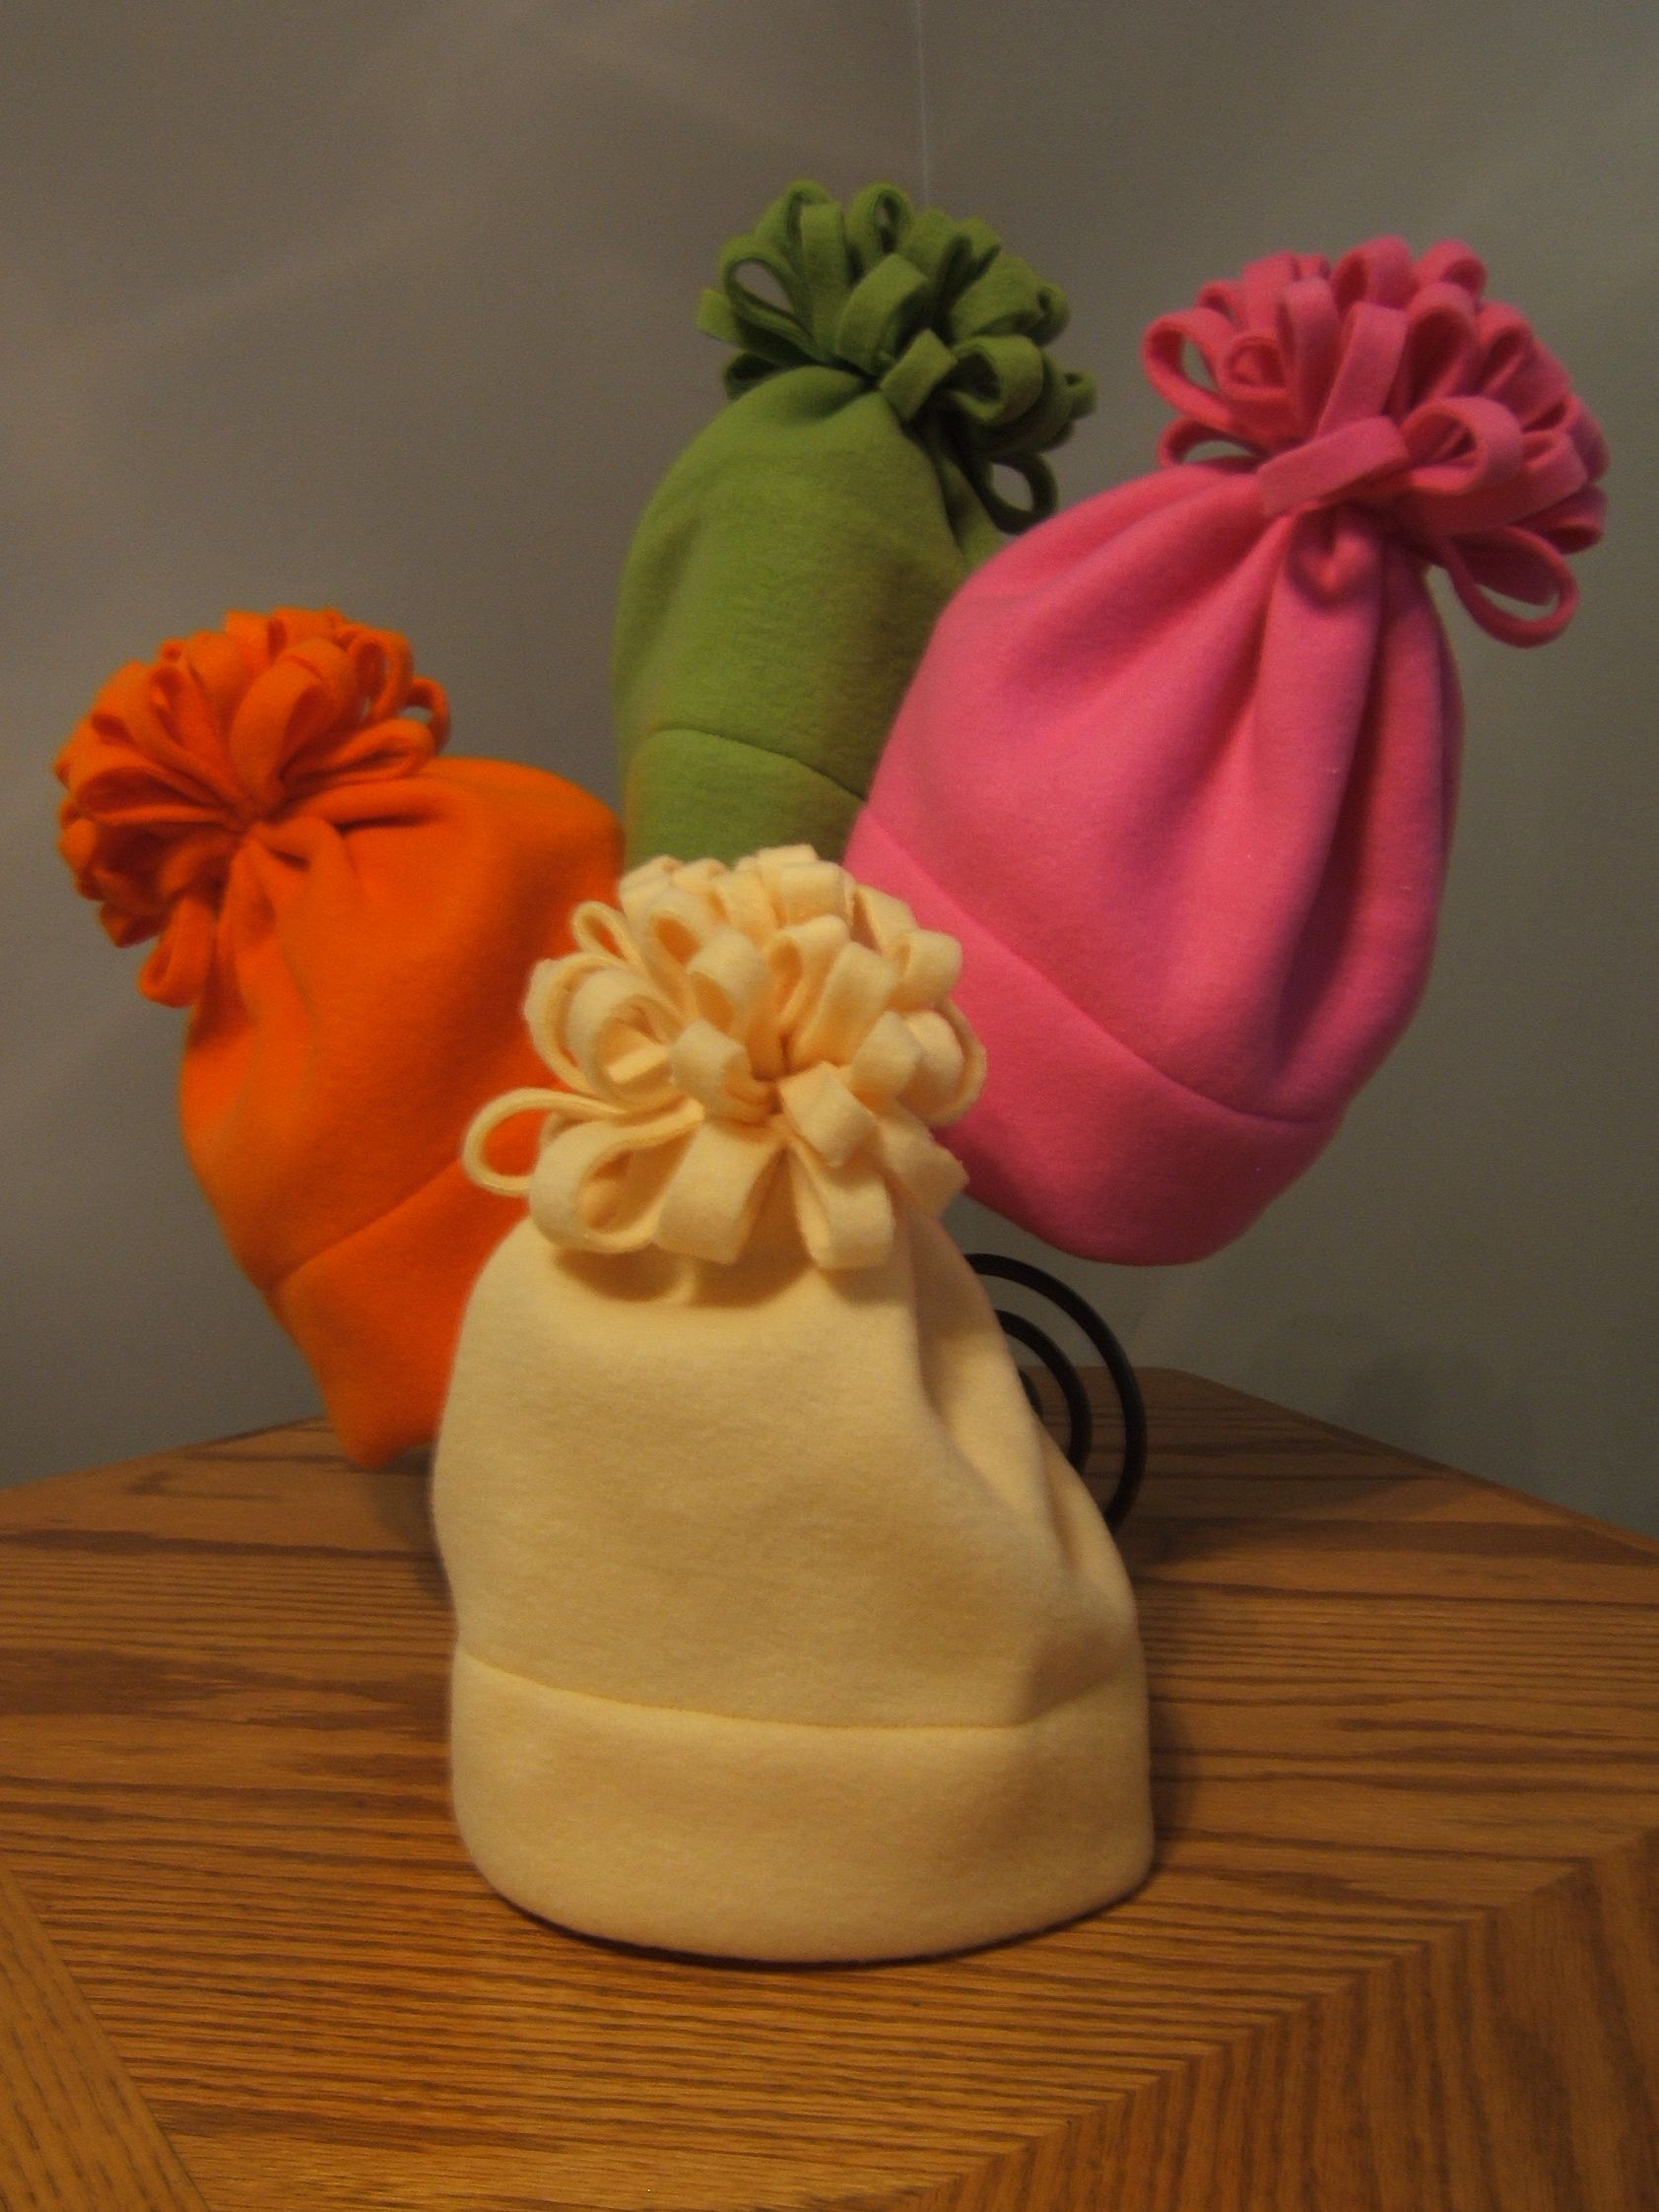 bbdfc697dd9 Good Morning All. Here are my pics of my easy fleece hats. To make these hats  is very simple. All you need is at least 1 2 yard of fleece to complete.